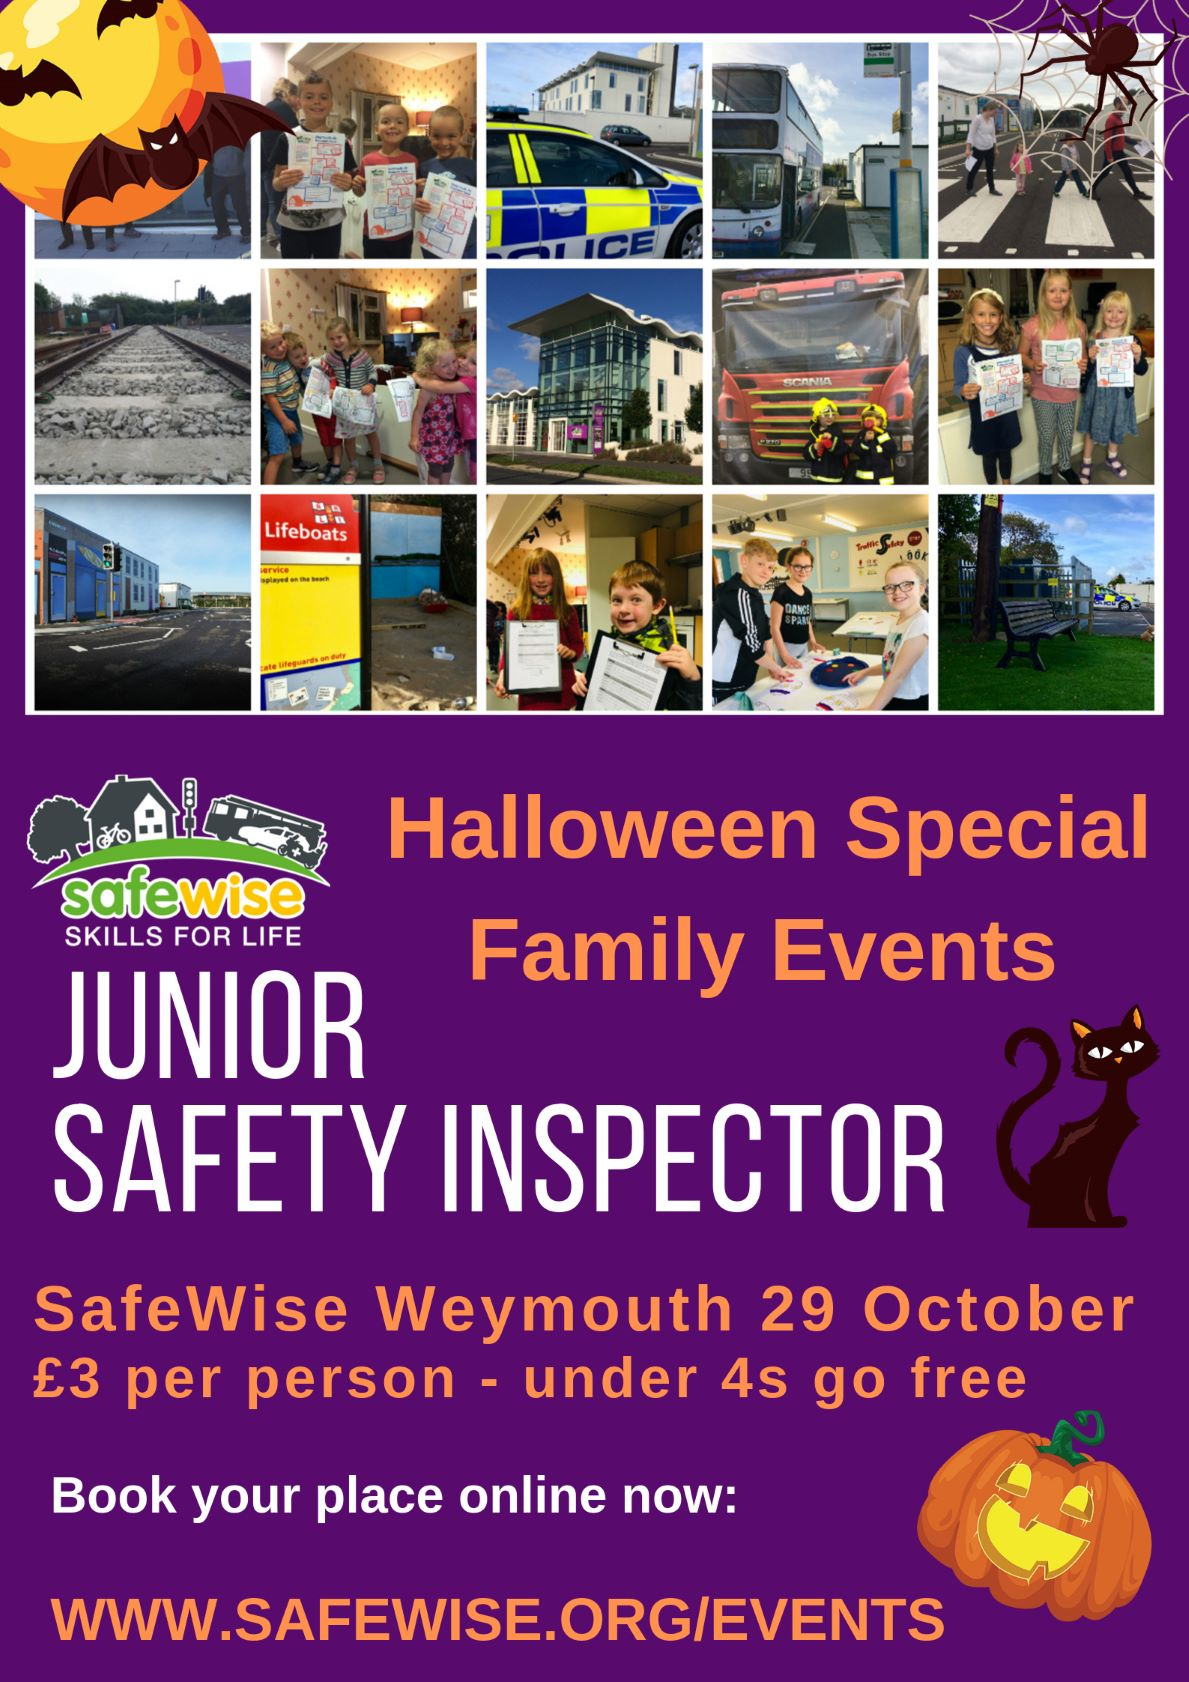 Junior Safety Inspector Family Tours - Halloween Special